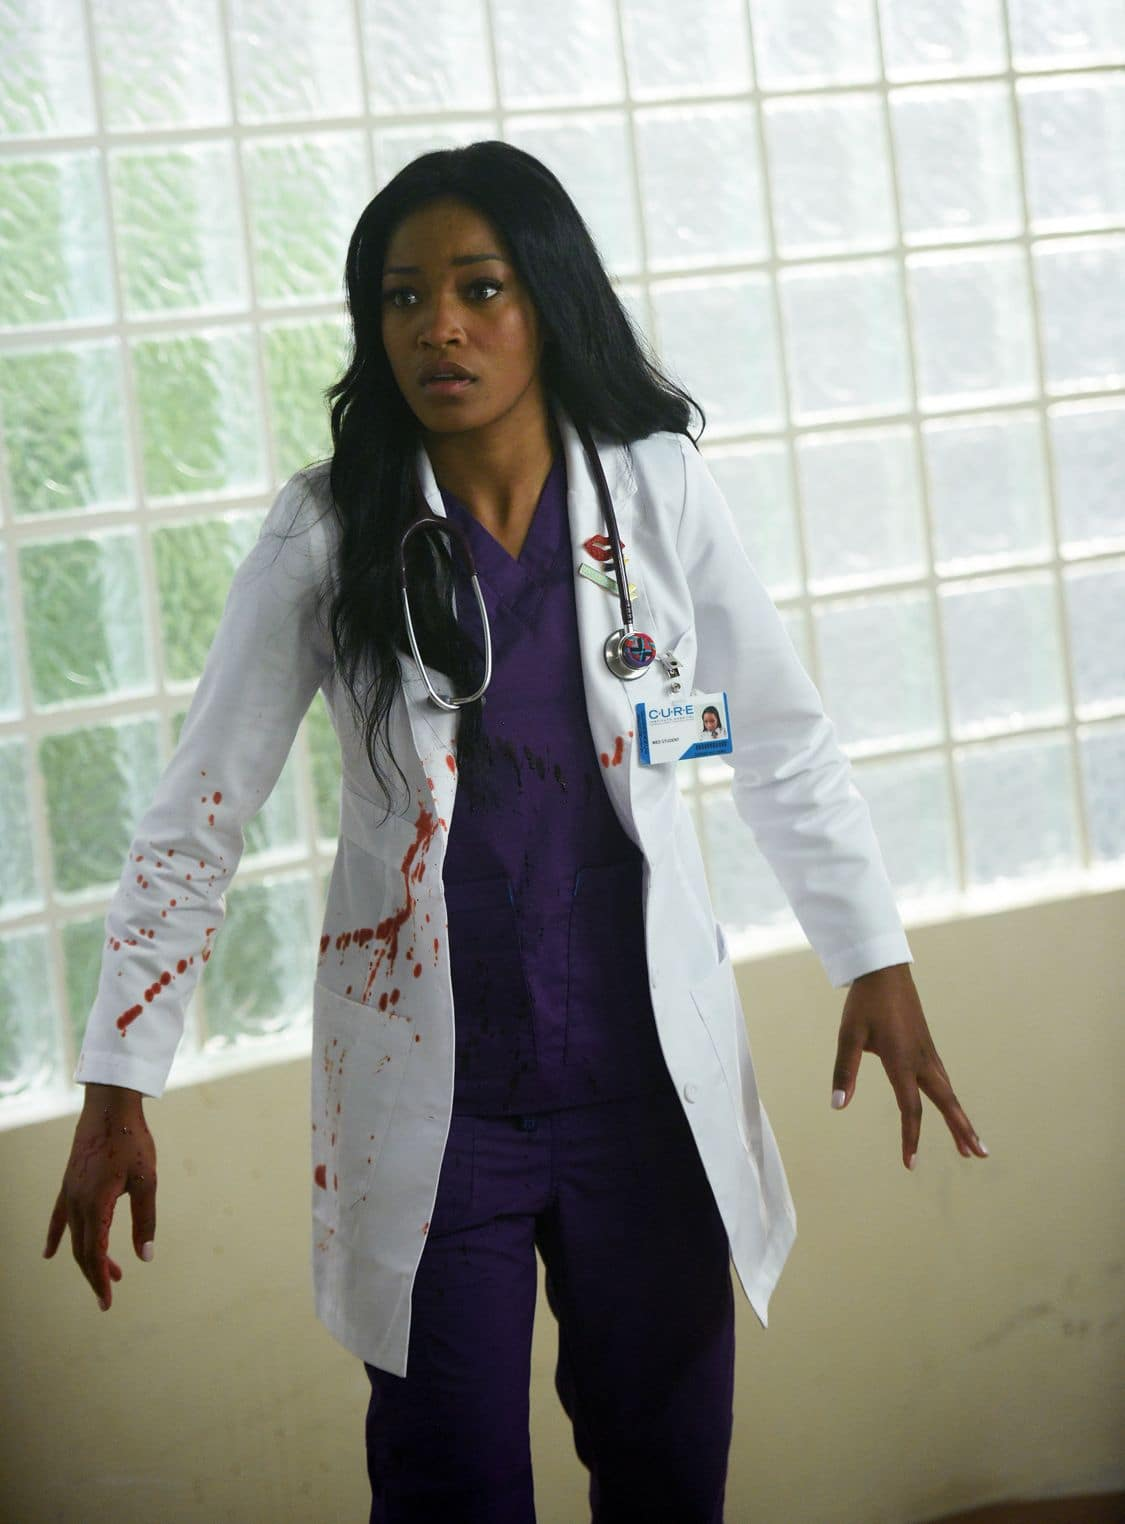 """SCREAM QUEENS: Keke Palmer in the all-new """"Handidates"""" episode of SCREAM QUEENS airing Tuesday, Oct. 11 (9:01-10:00 PM ET/PT) on FOX. Cr: Michael Becker / FOX. © 2016 FOX Broadcasting Co."""